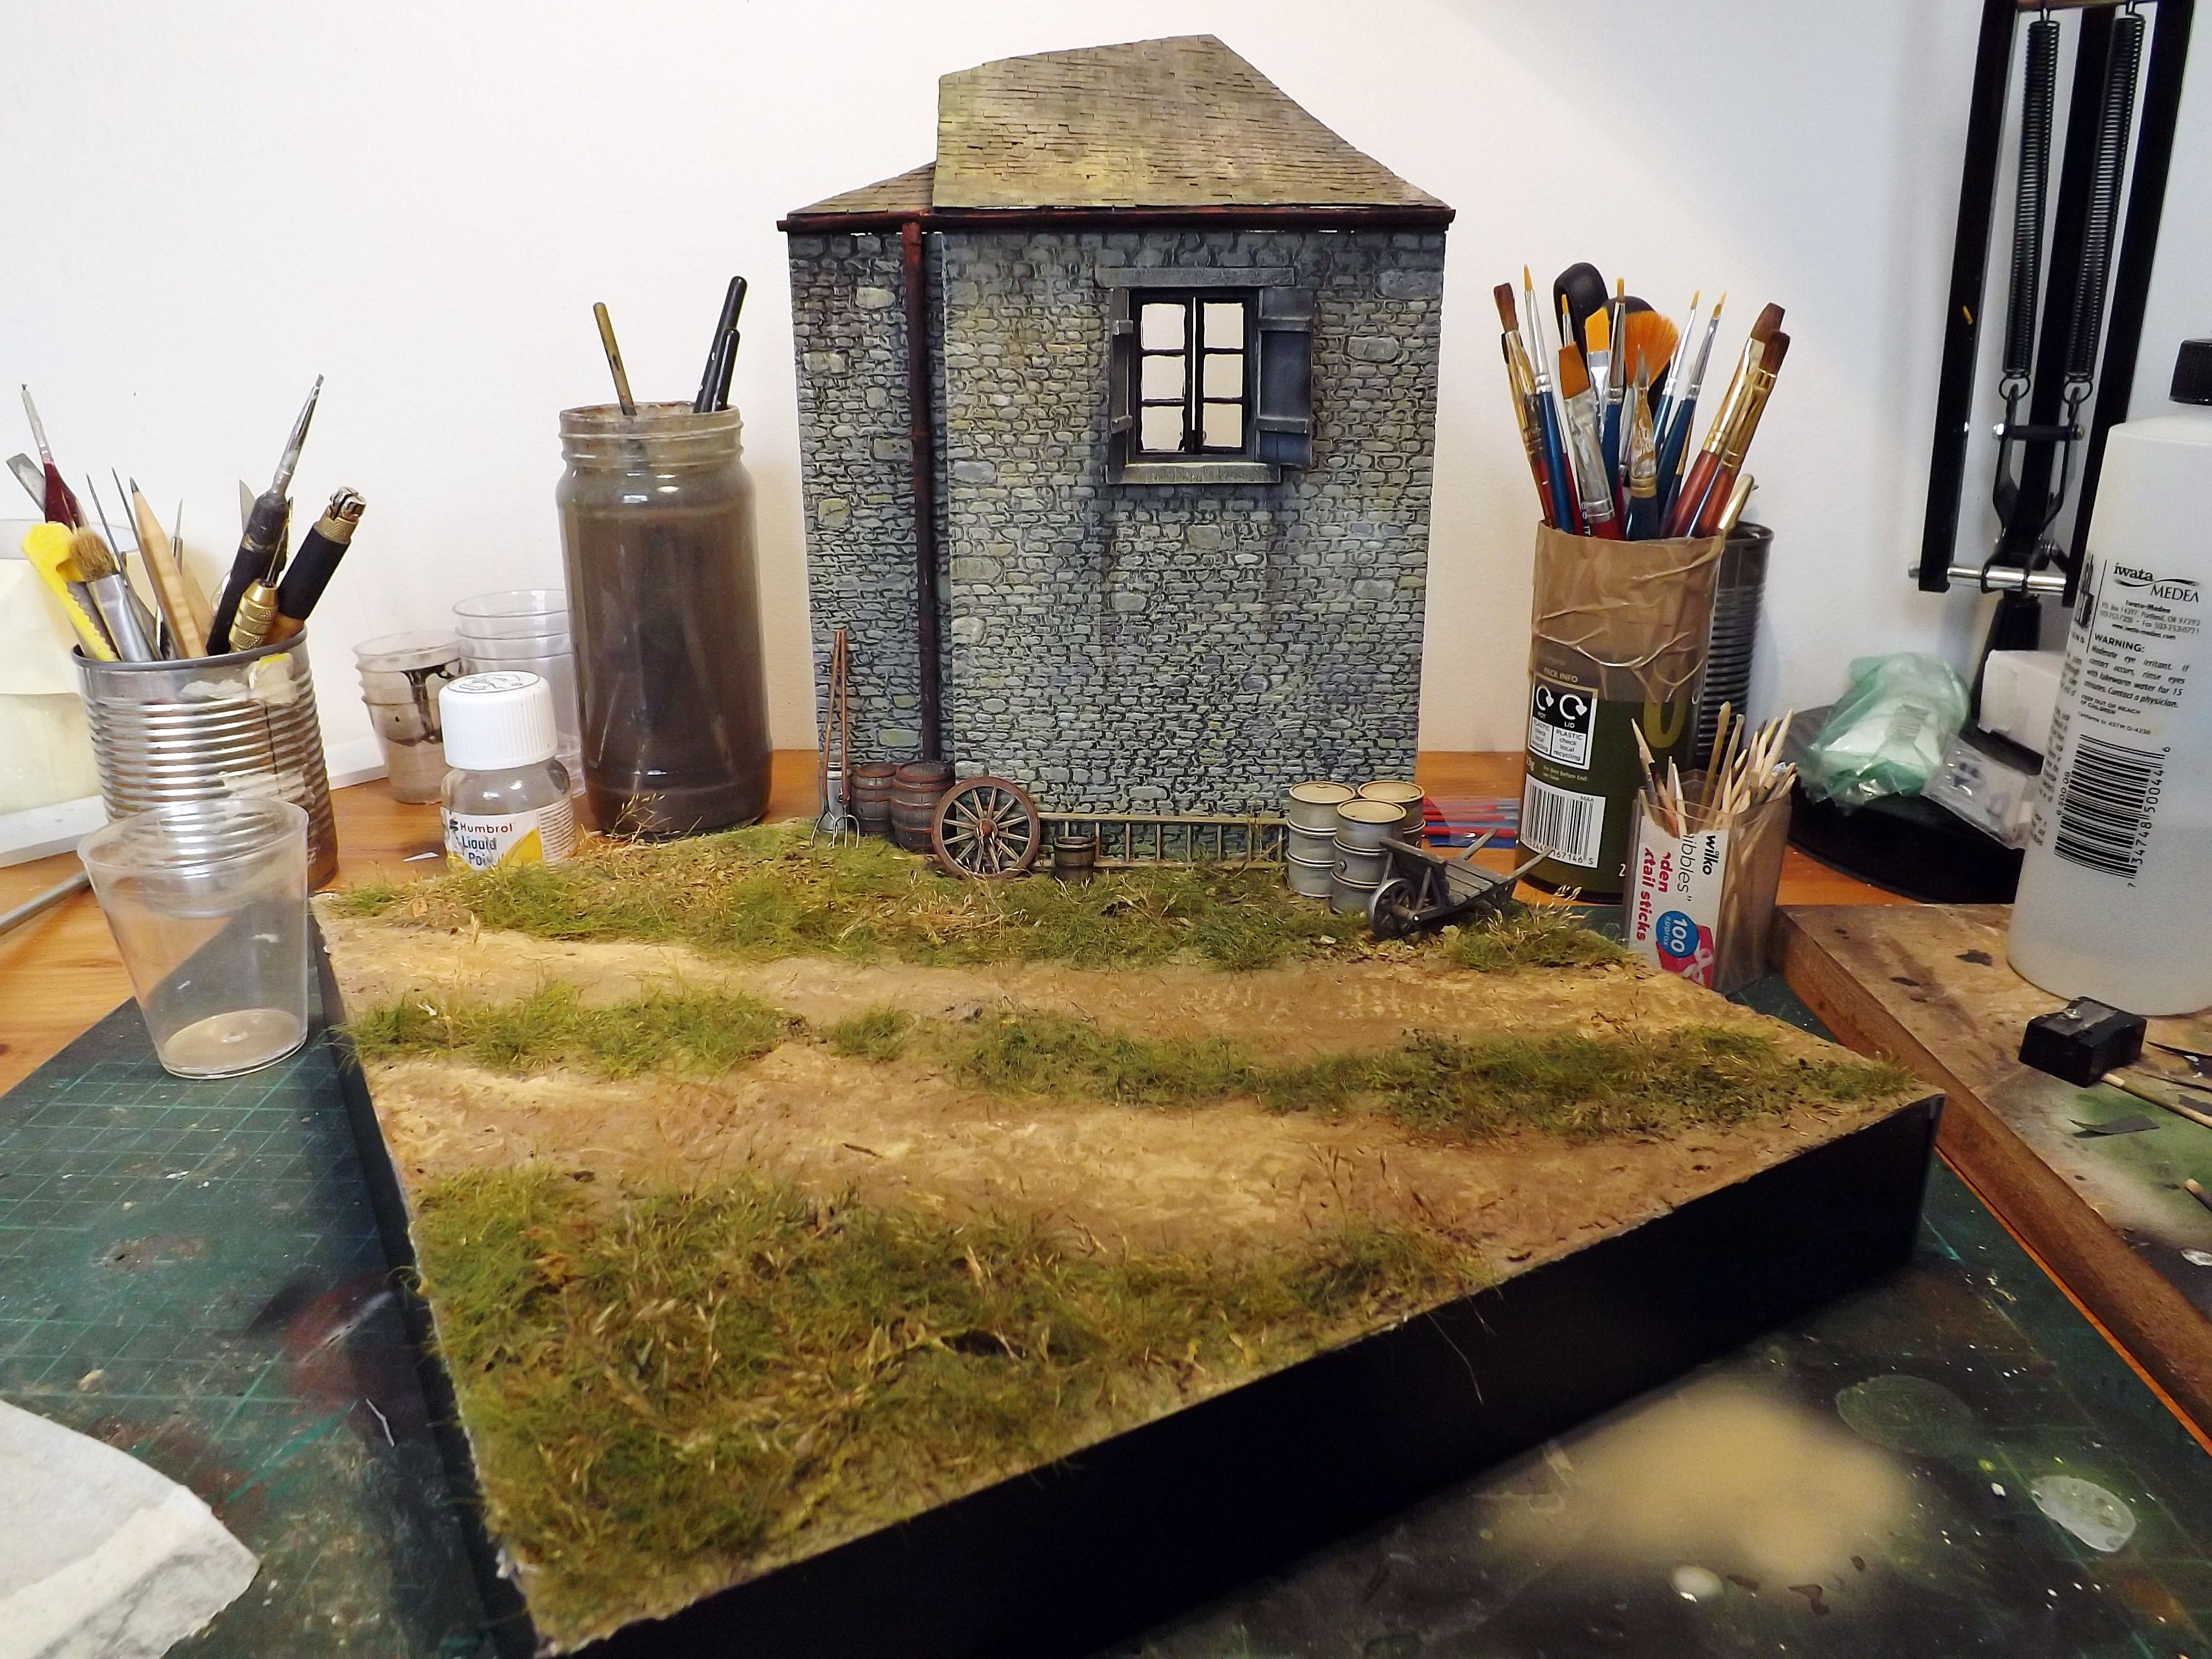 French Farm 1 35 Scale Diorama Base By Terence Young Military Diorama Farm Diorama Diorama